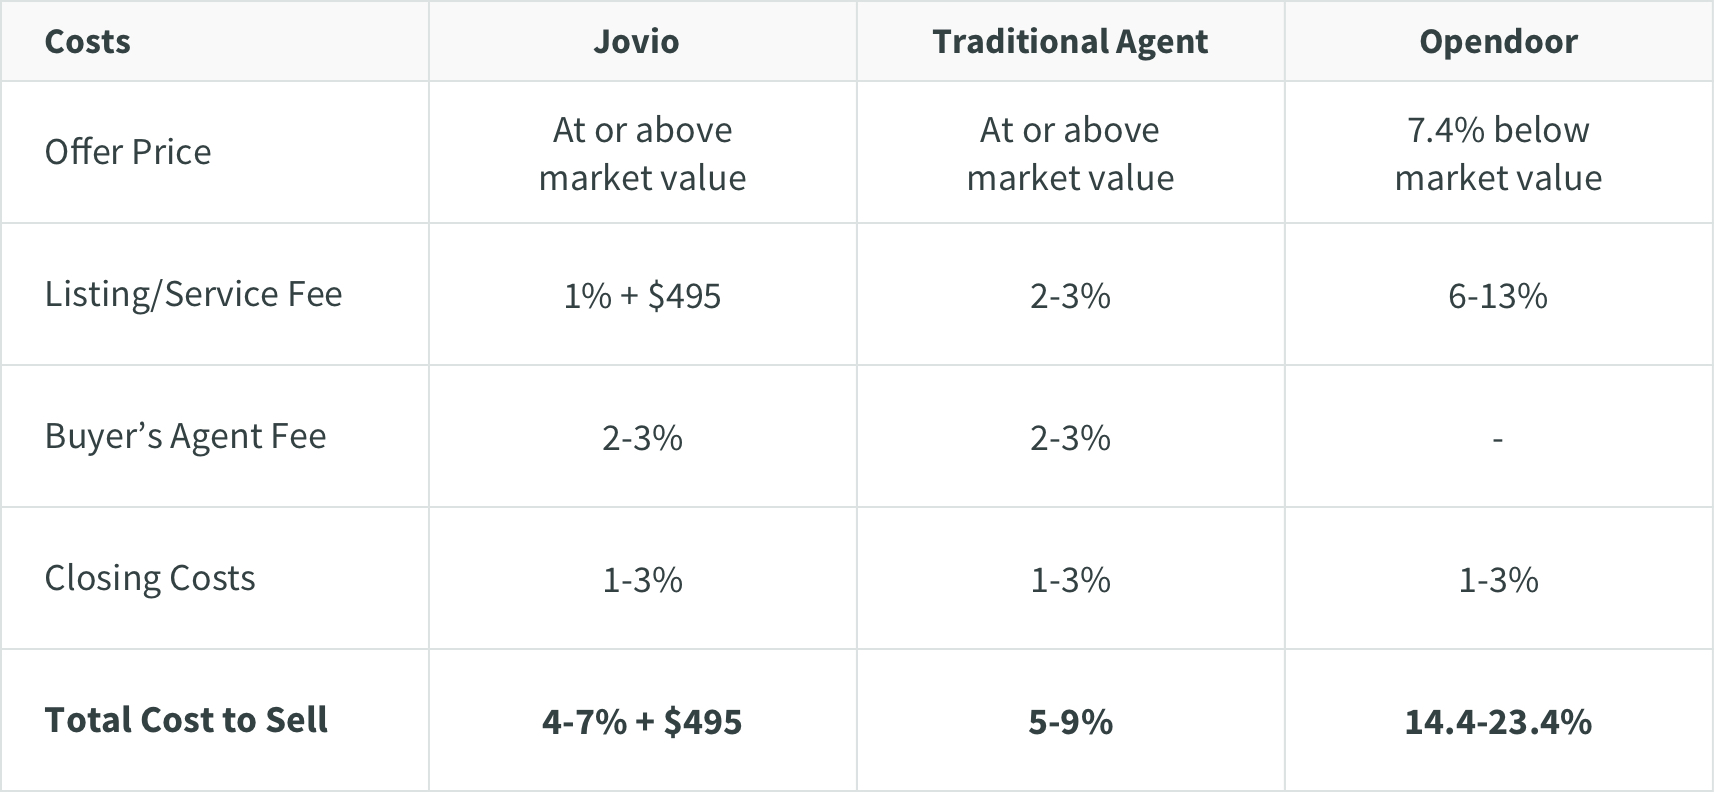 chart showing comparison of costs when selling with Jovio, a traditional agent, and Opendoor with Jovio being th elowest total cost and Opendoor being the highest